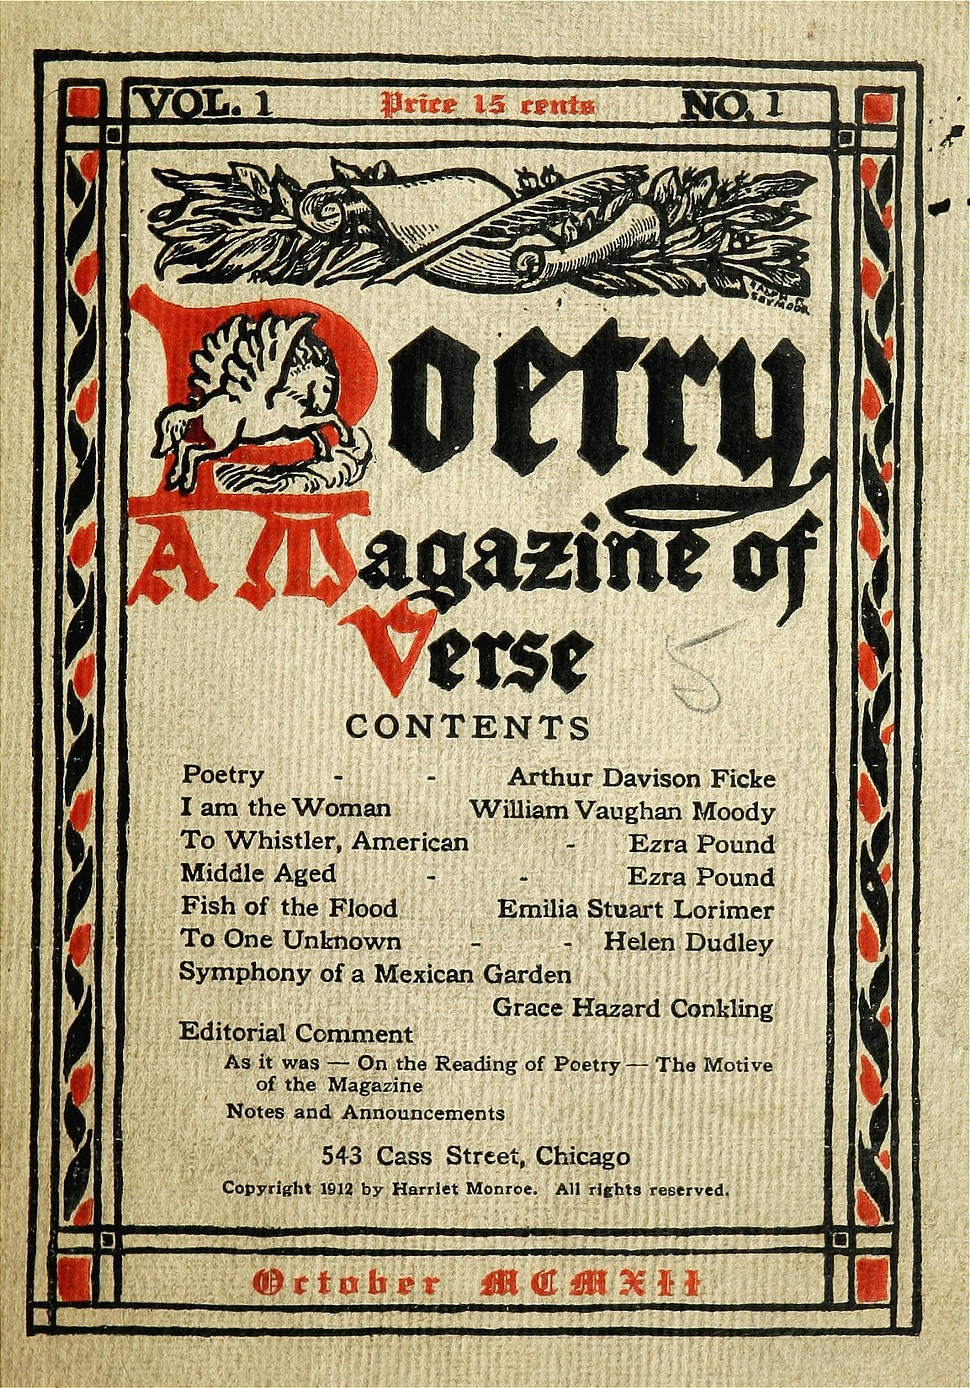 The first-ever issue of Poetry.